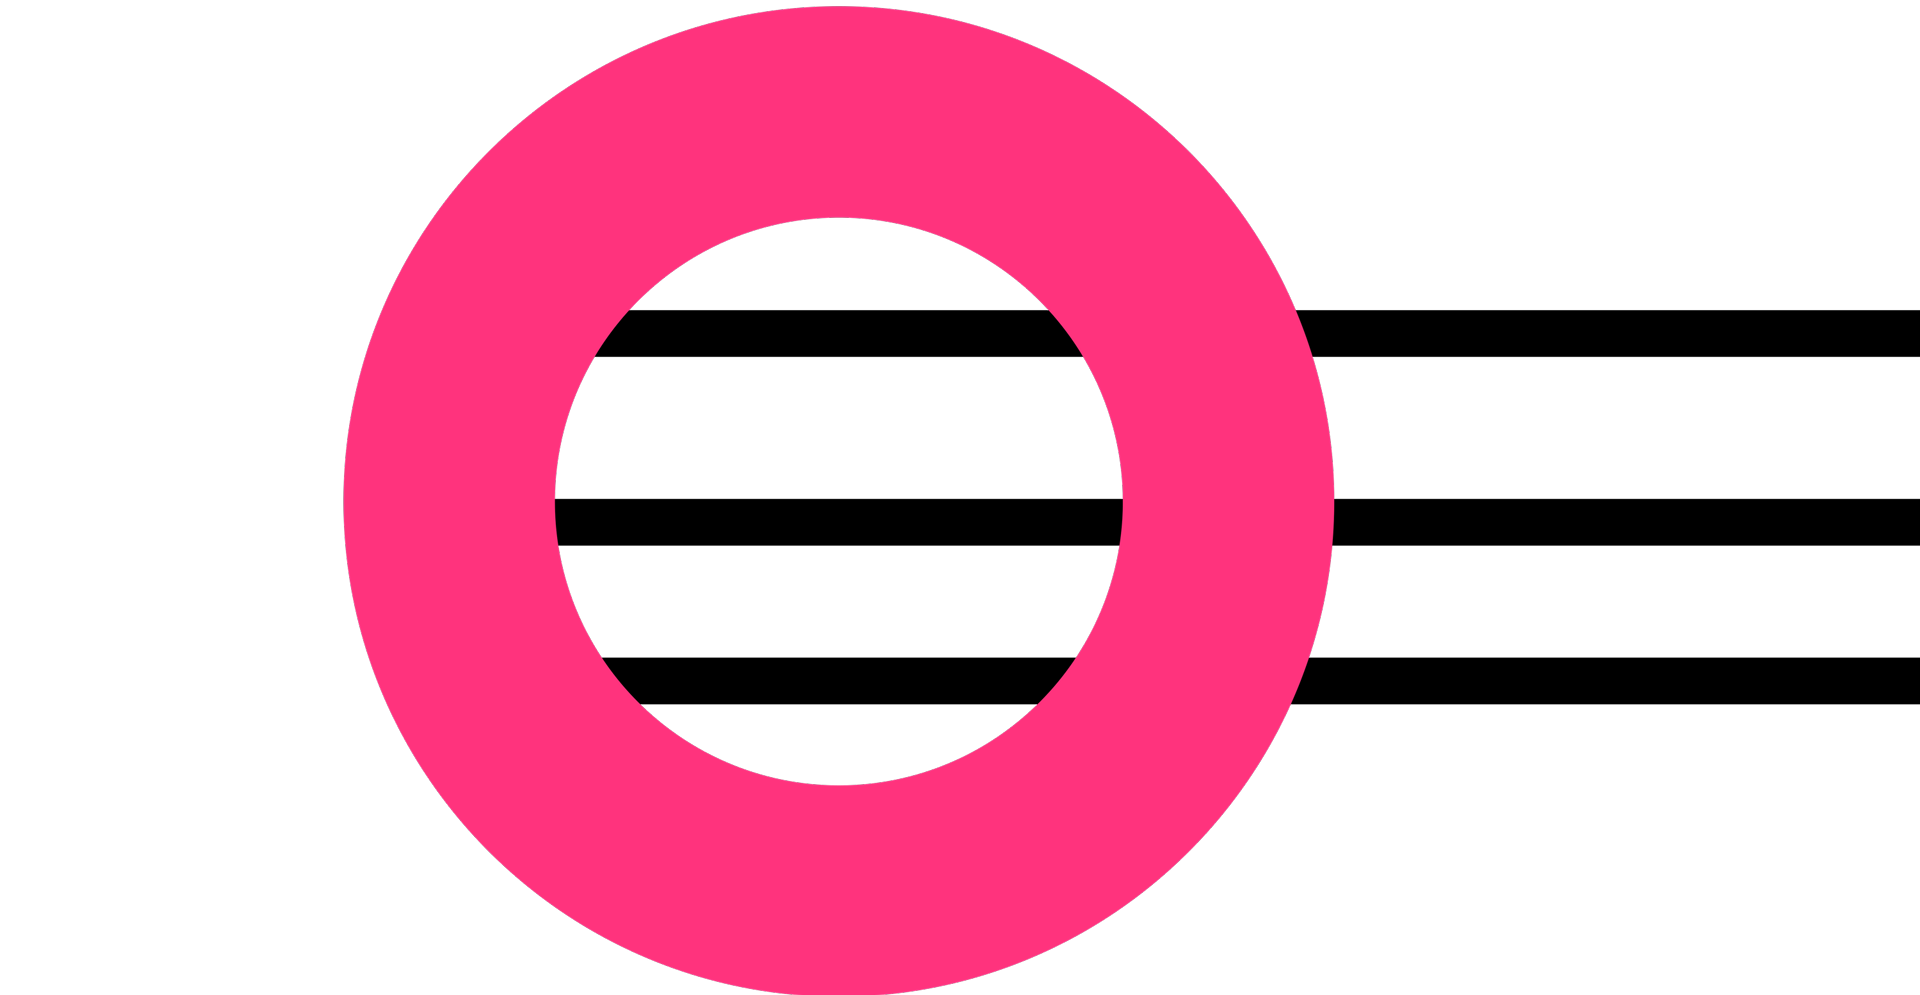 pink-with-black-lines